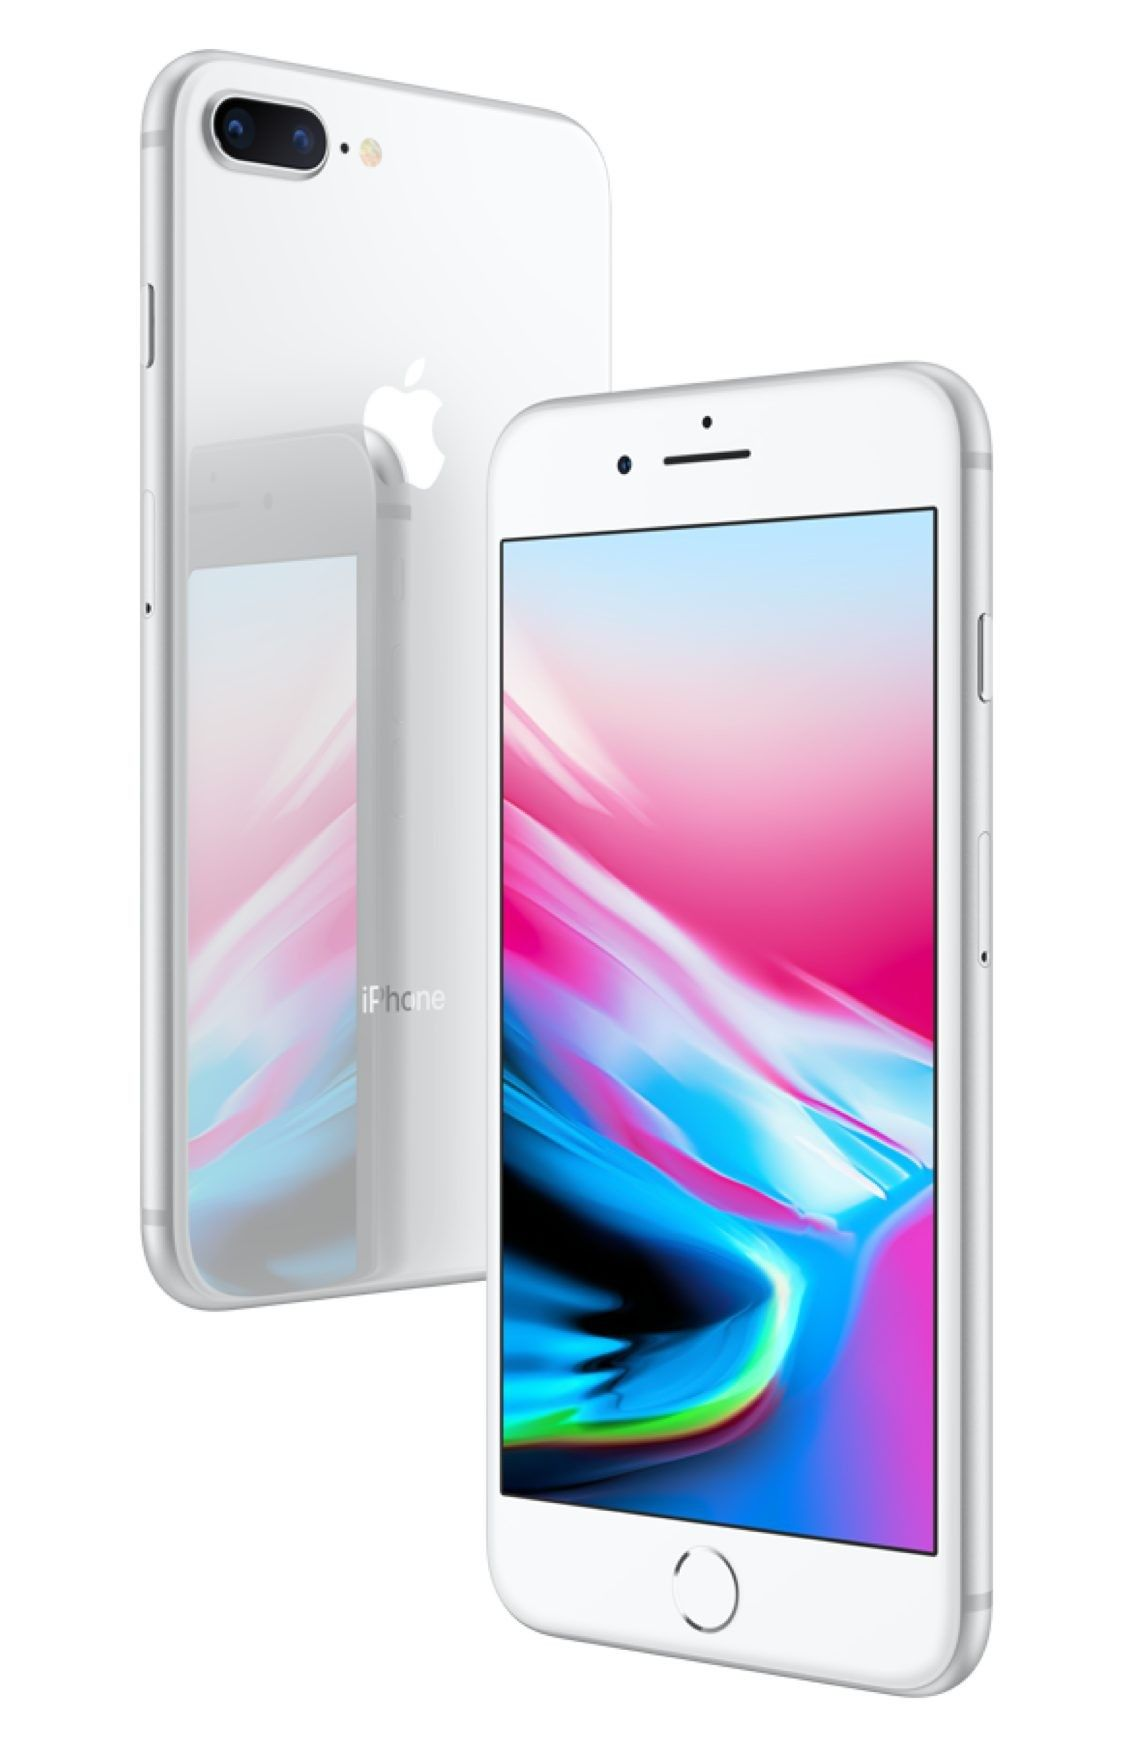 iPhone 8 Plus 599.99 with 64GB (Boost Mobile) Iphone